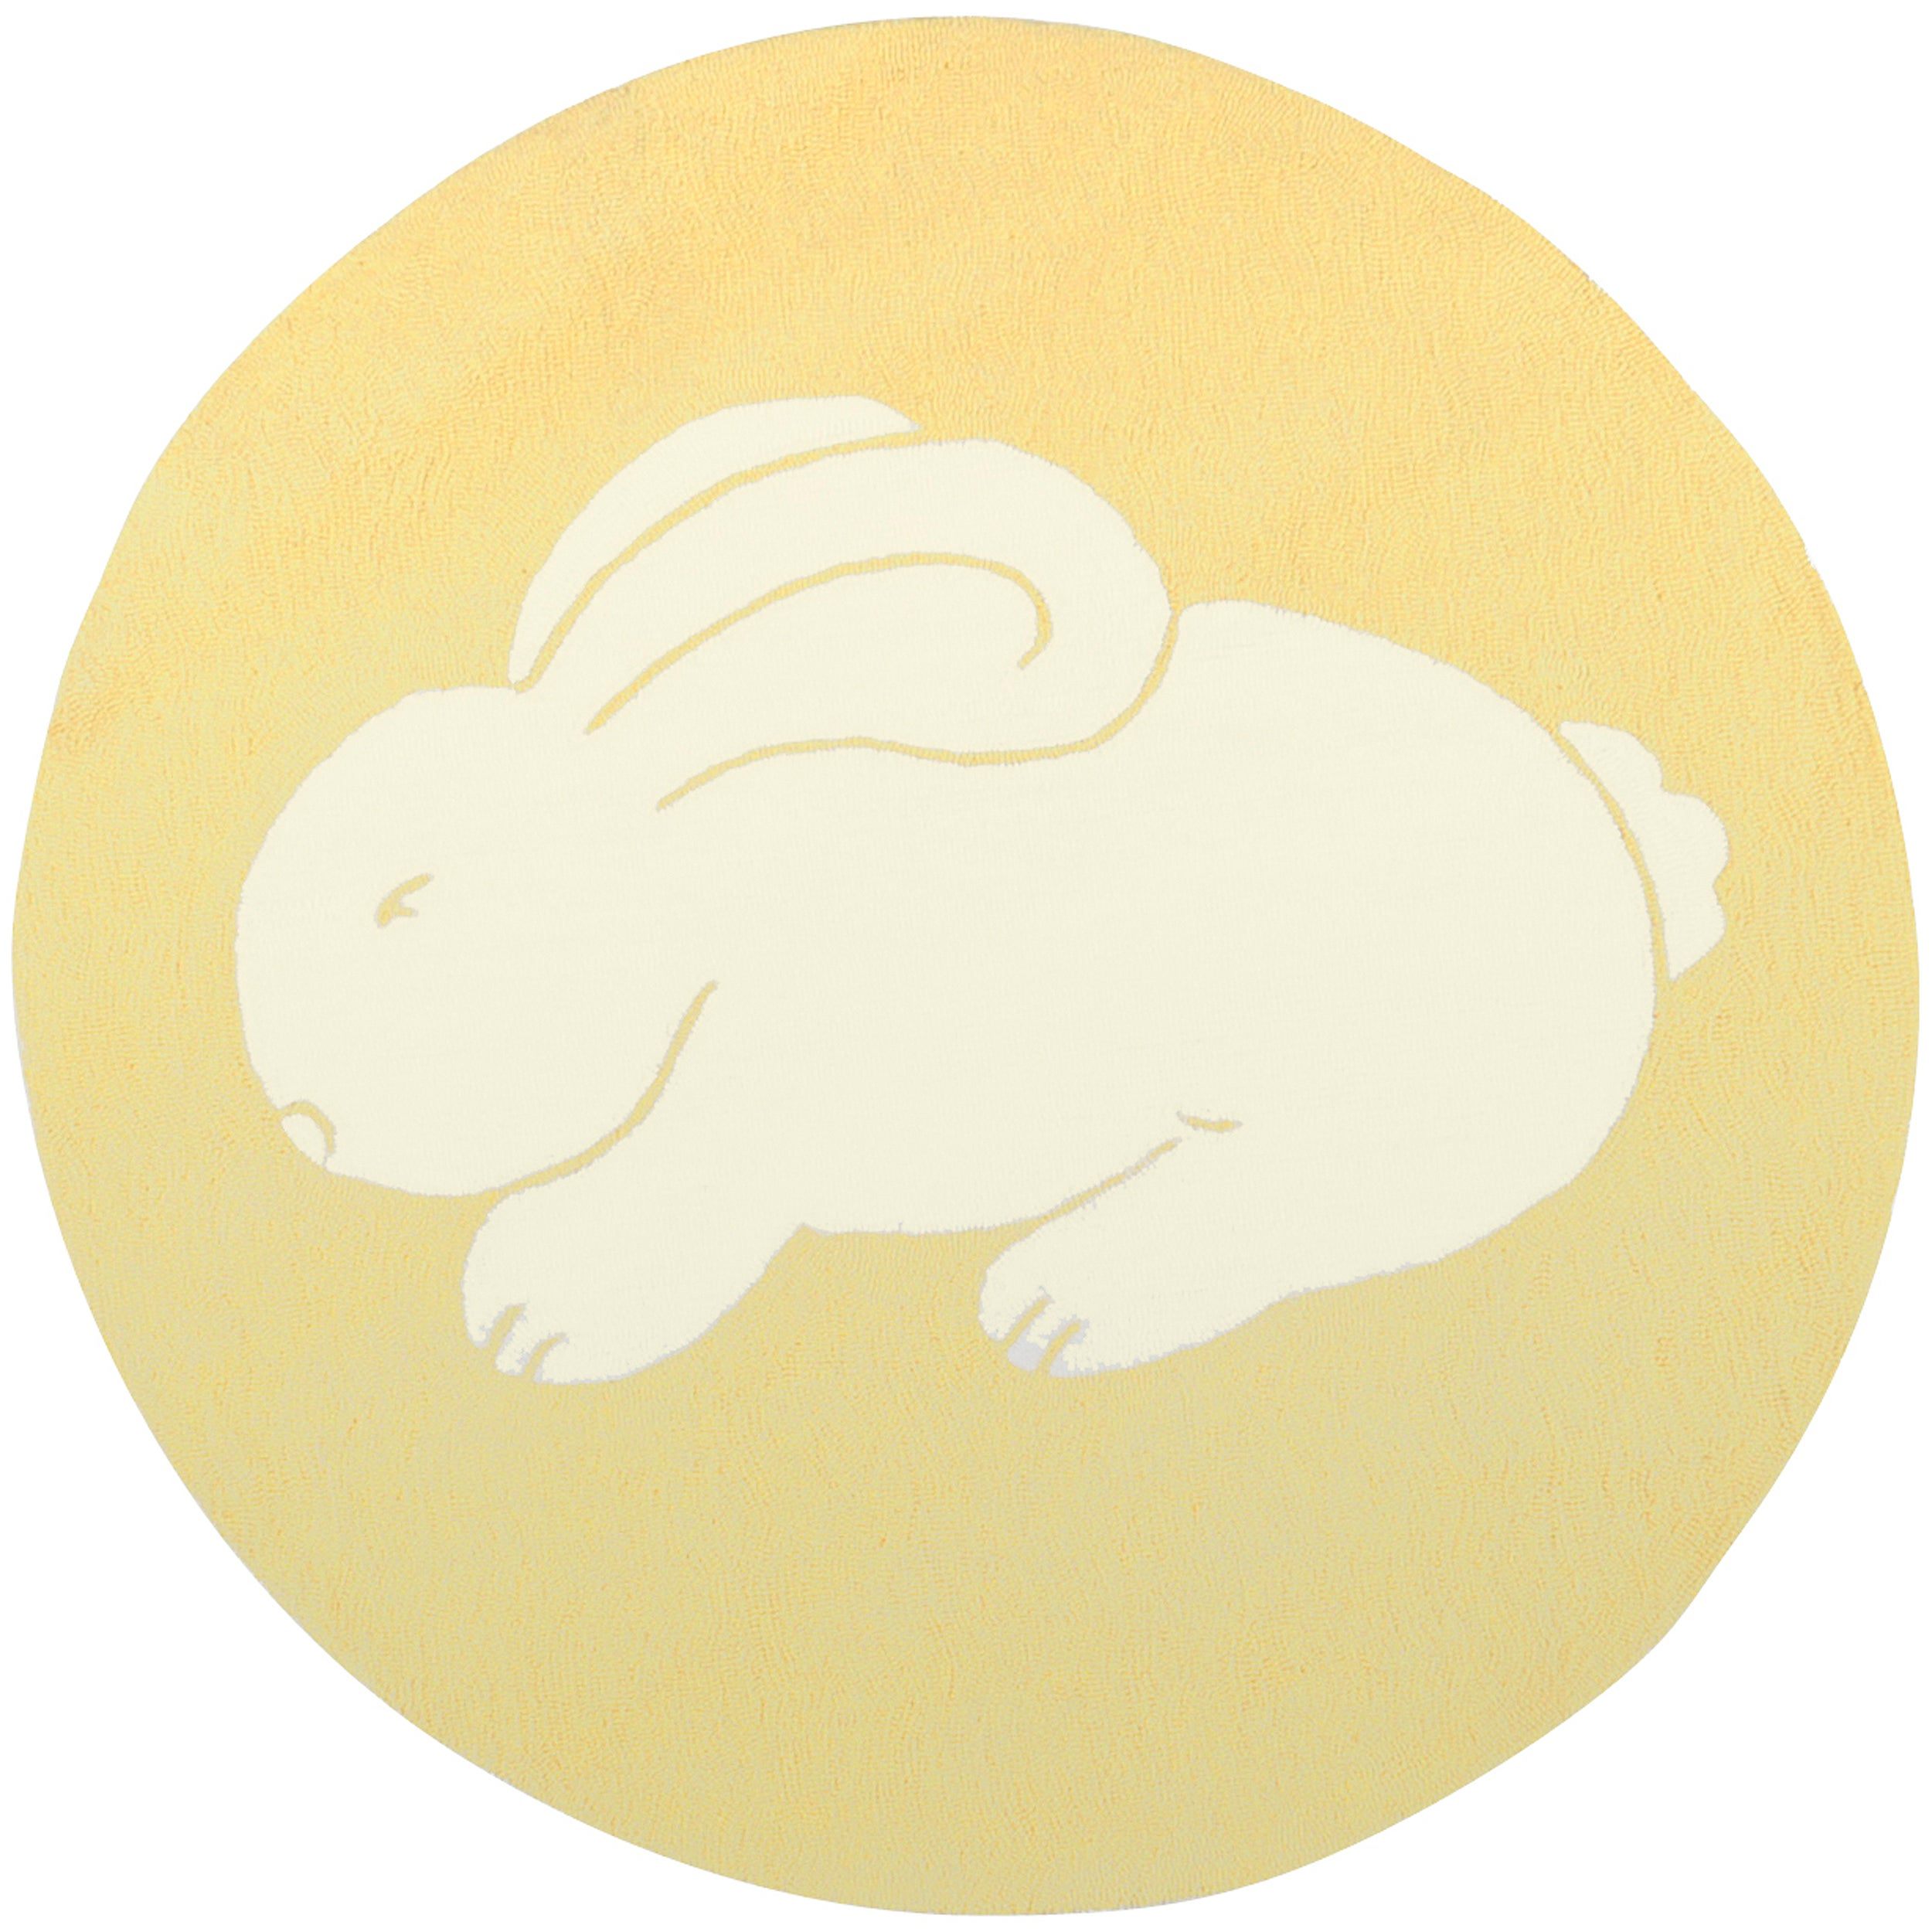 Hand-Hooked Yellow/Multicolored Bunny Portage Rug (8' Round)